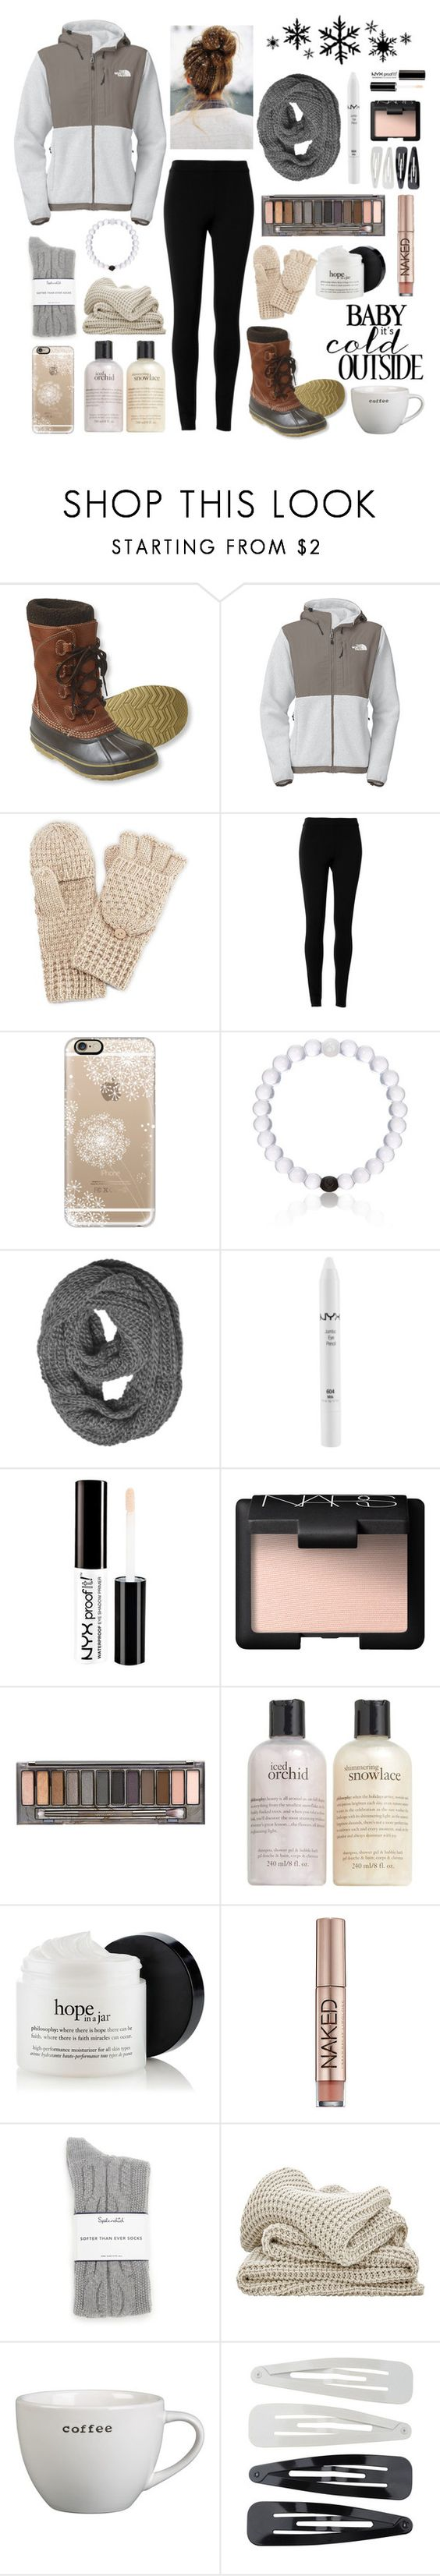 """✧;; let it snow, let it snow, let it snow (read d)"" by kickitap ❤ liked on Polyvore featuring L.L.Bean, The North Face, Max Studio, Casetify, Everest, NYX, NARS Cosmetics, Urban Decay, philosophy and Splendid"